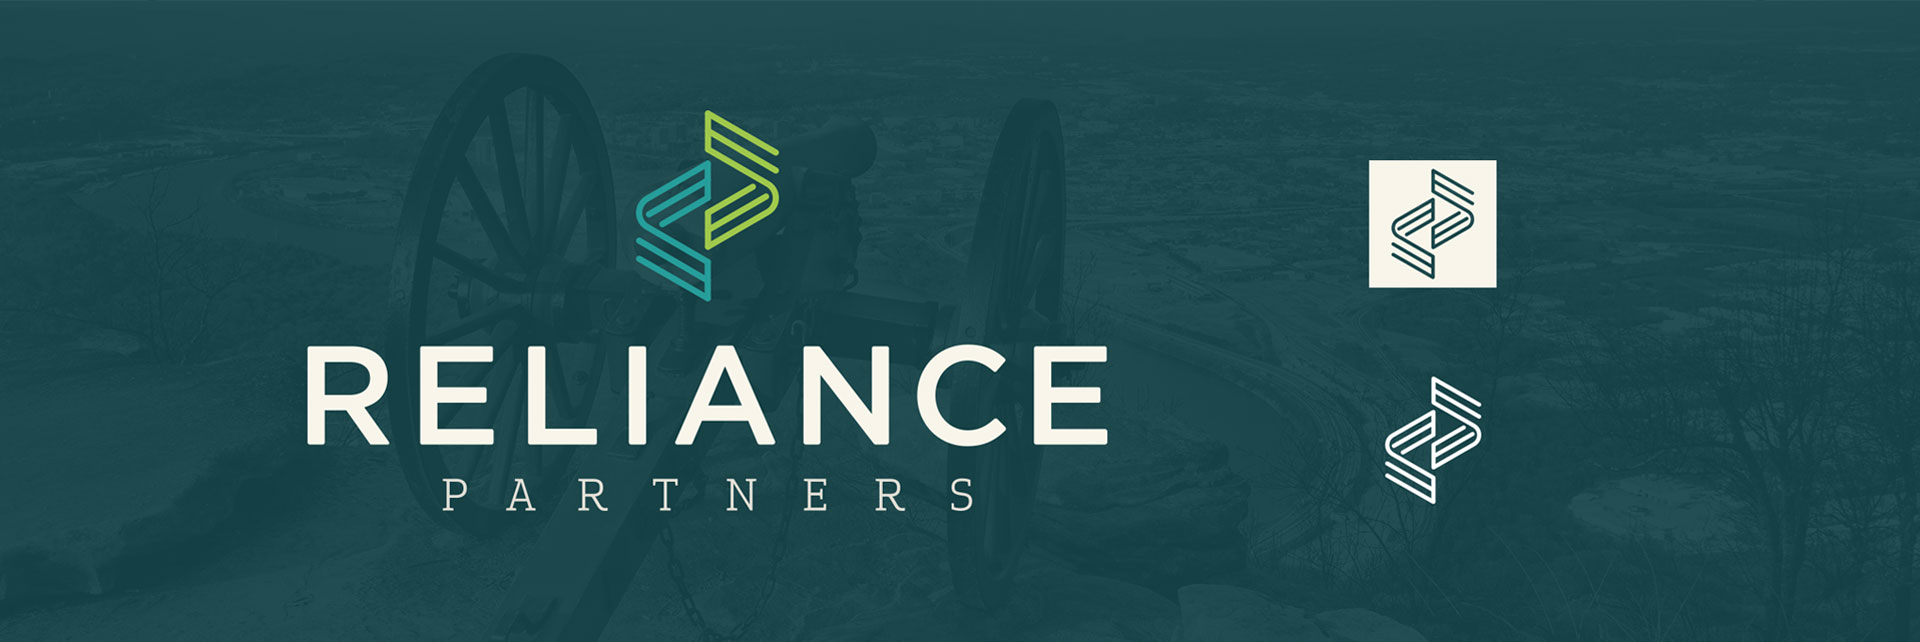 Tiny Giant - Reliance Partners - Identity